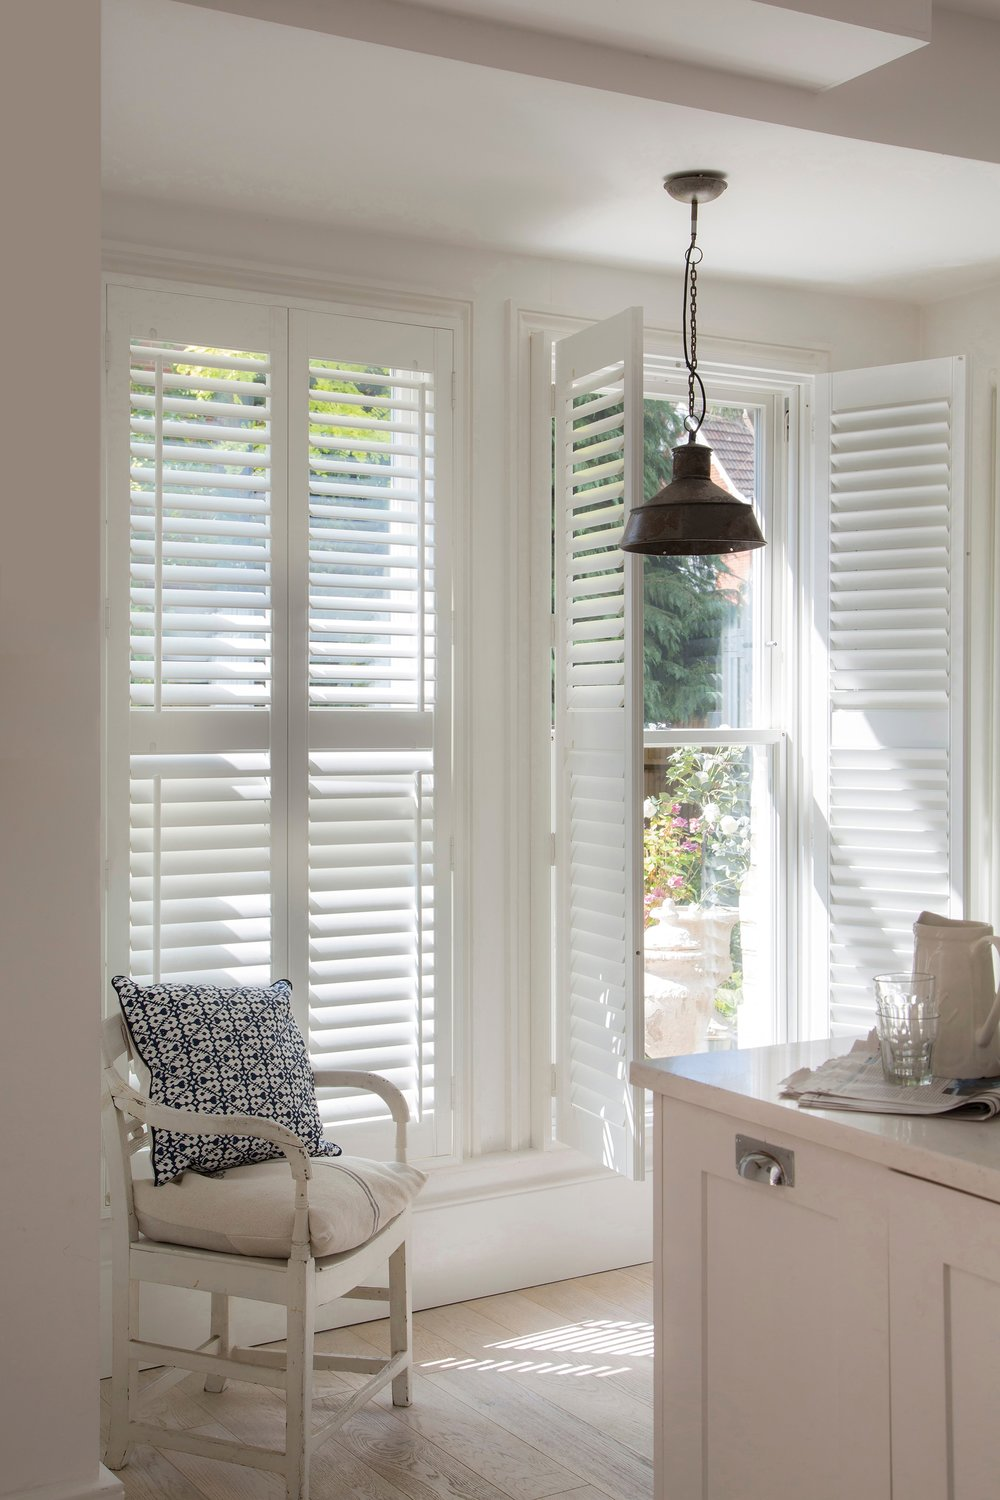 An alternative to curtains for the home are shutters by Luxaflex.